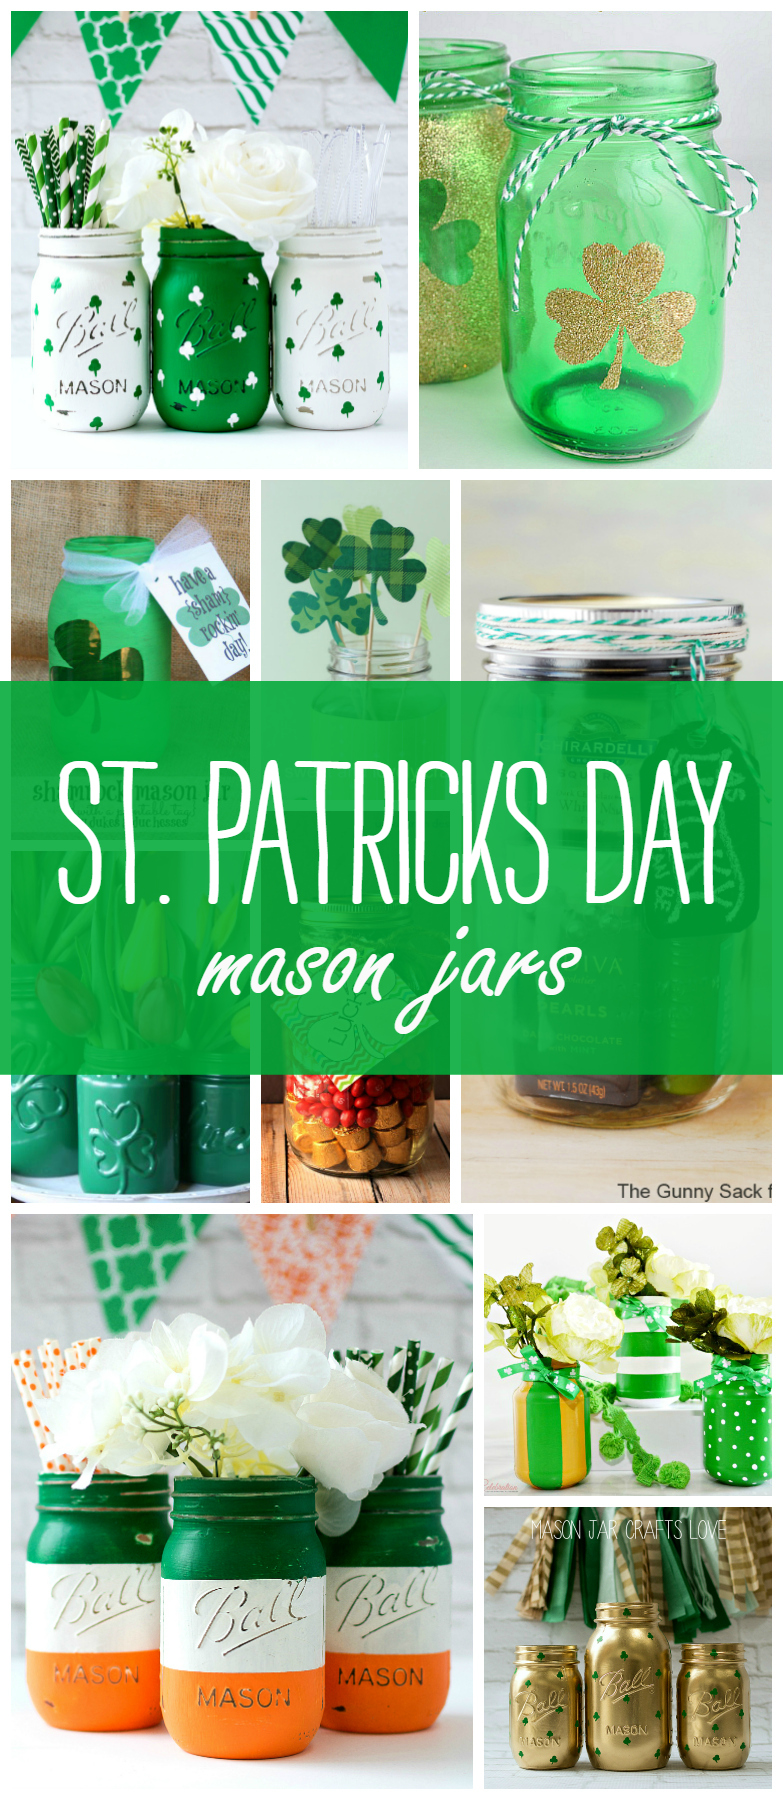 St. Patrick's Day Craft Ideas with Mason Jars